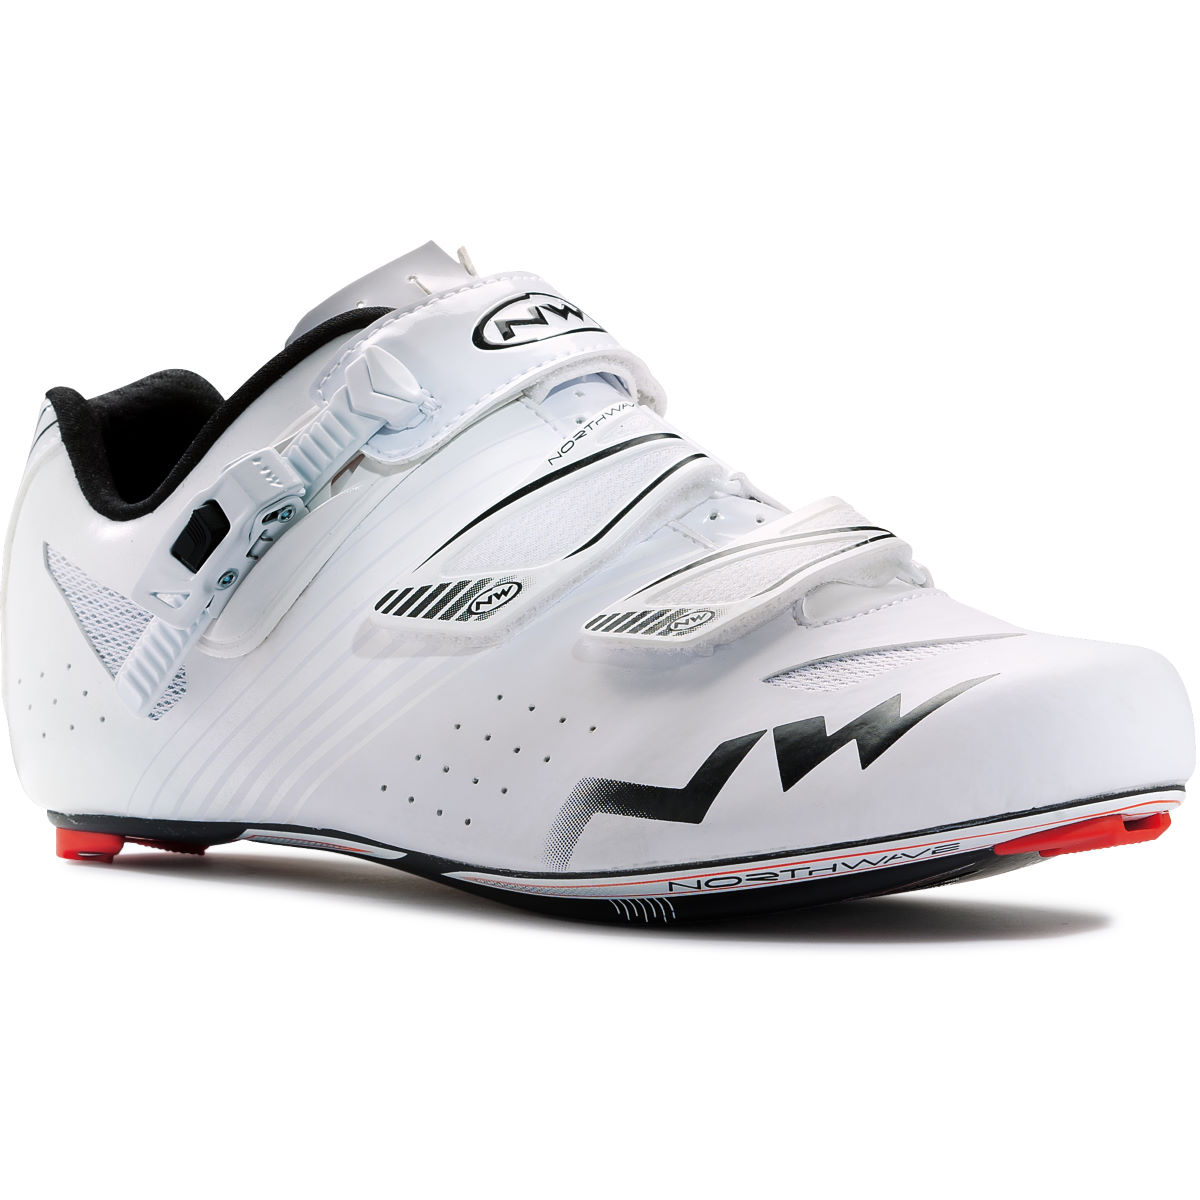 Chaussures de route Northwave Torpedo SRS - 44 Blanc